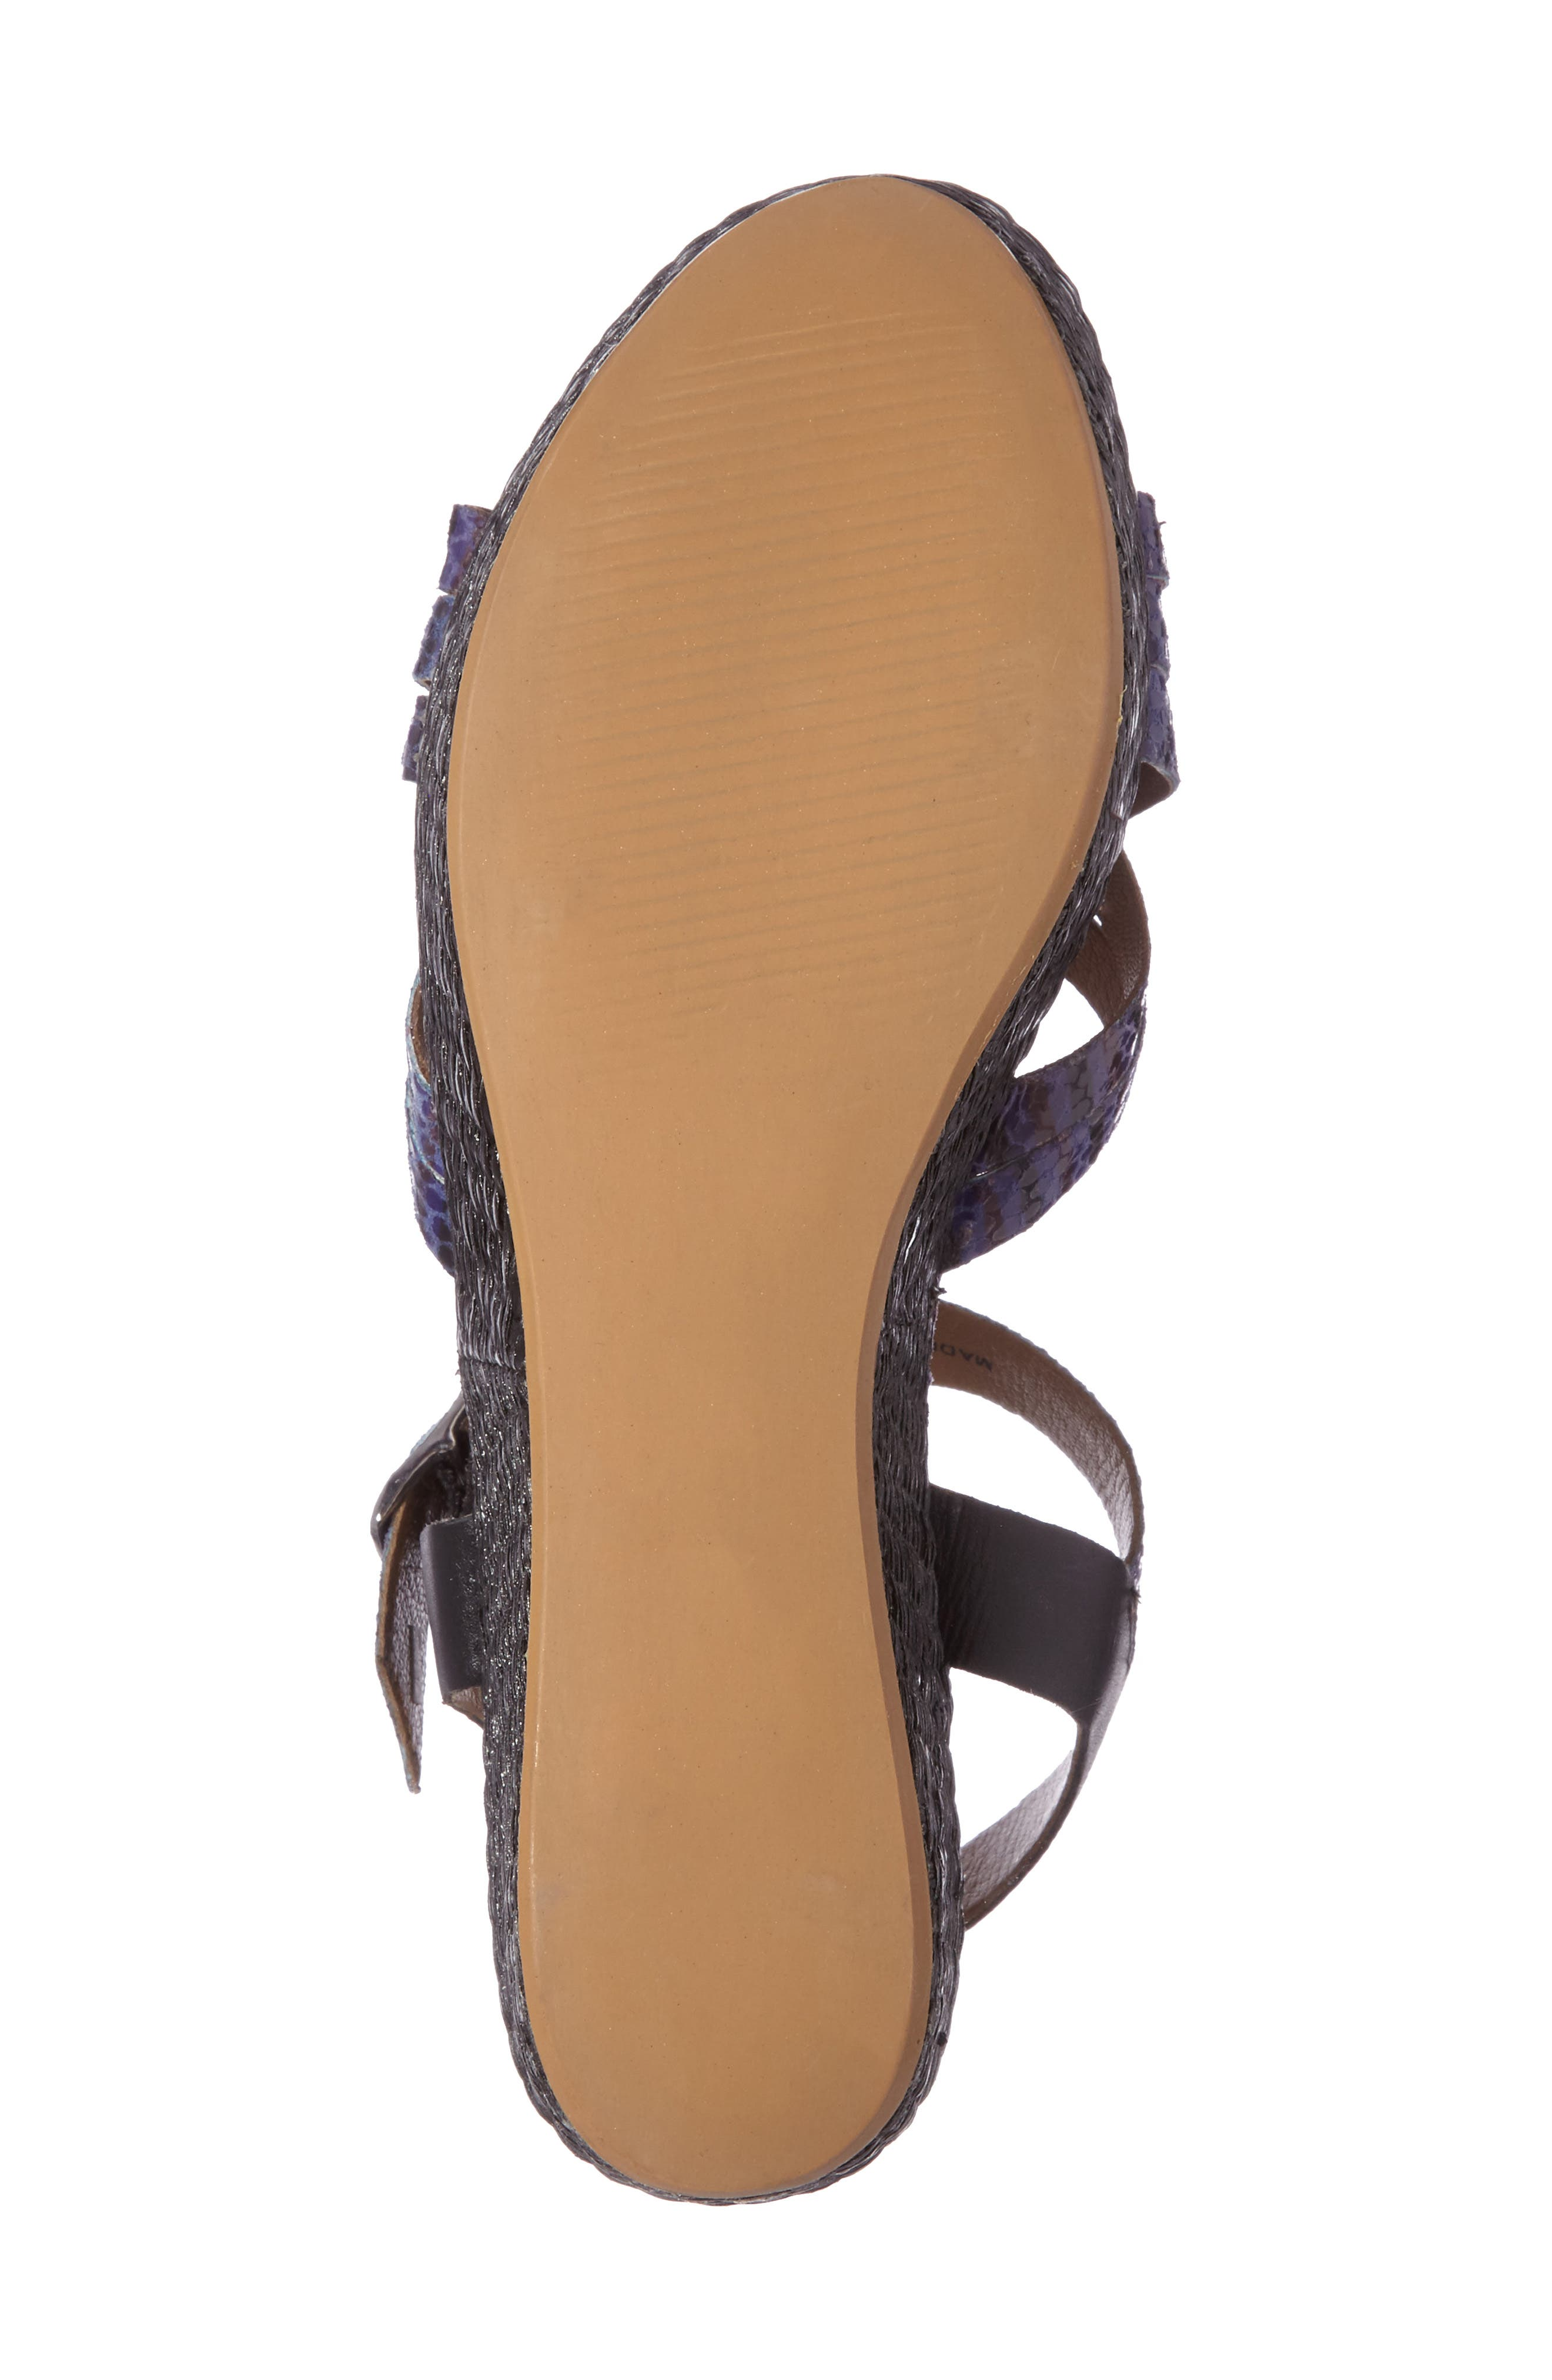 Valencia Platform Wedge Sandal,                             Alternate thumbnail 5, color,                             429